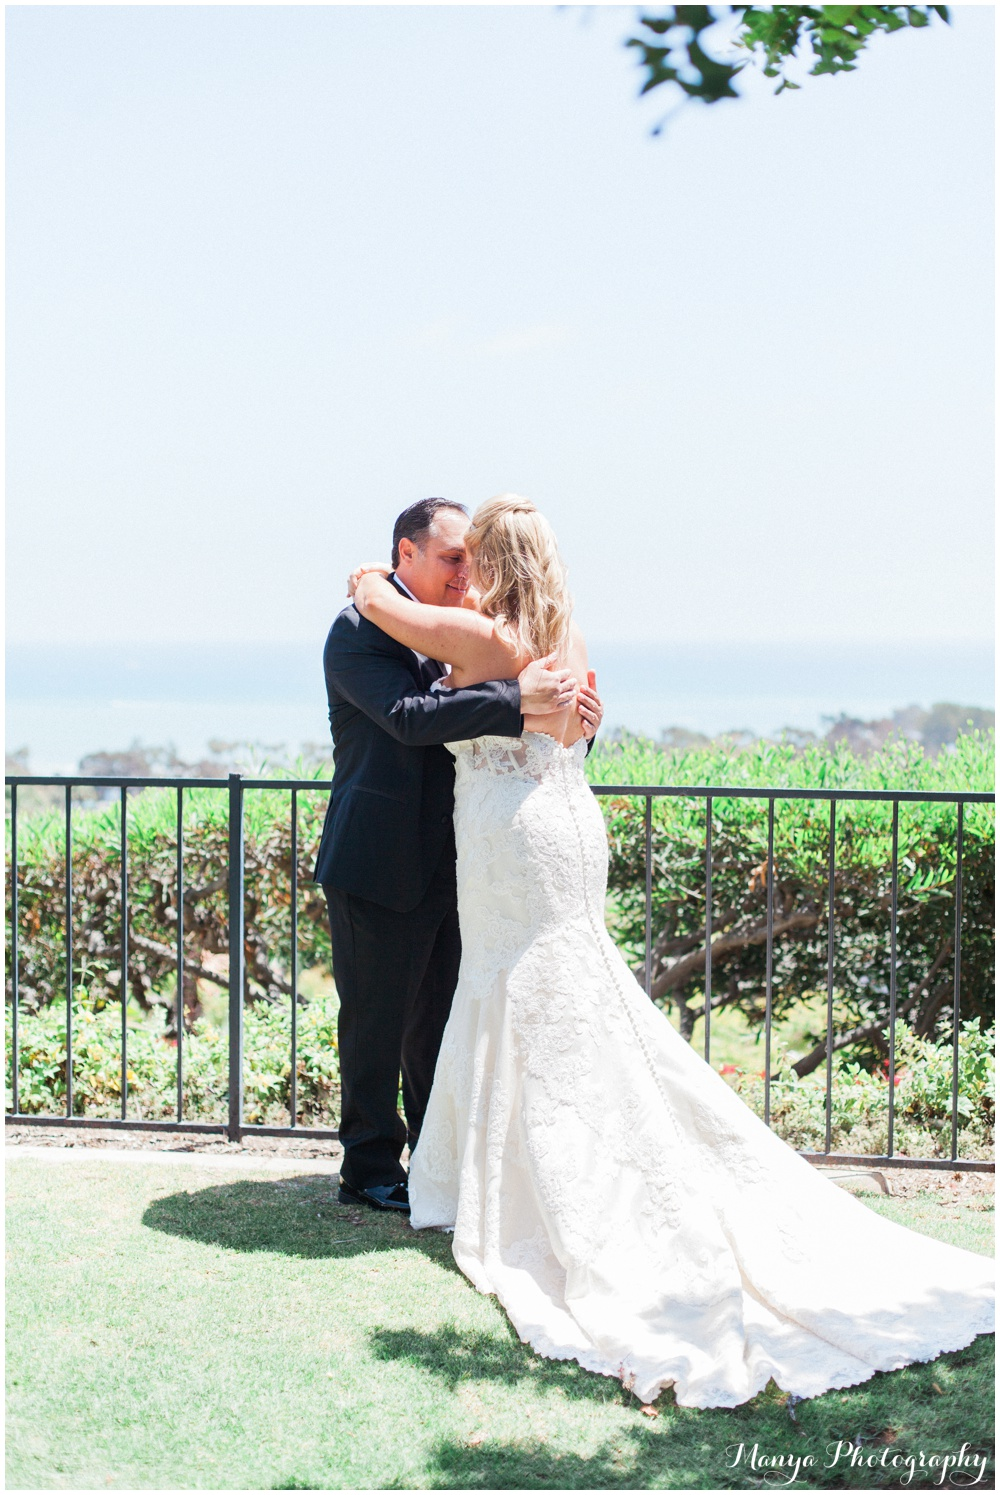 JandK_Wedding_Orange_County_Wedding_Photographer_Manya_Photography__0010